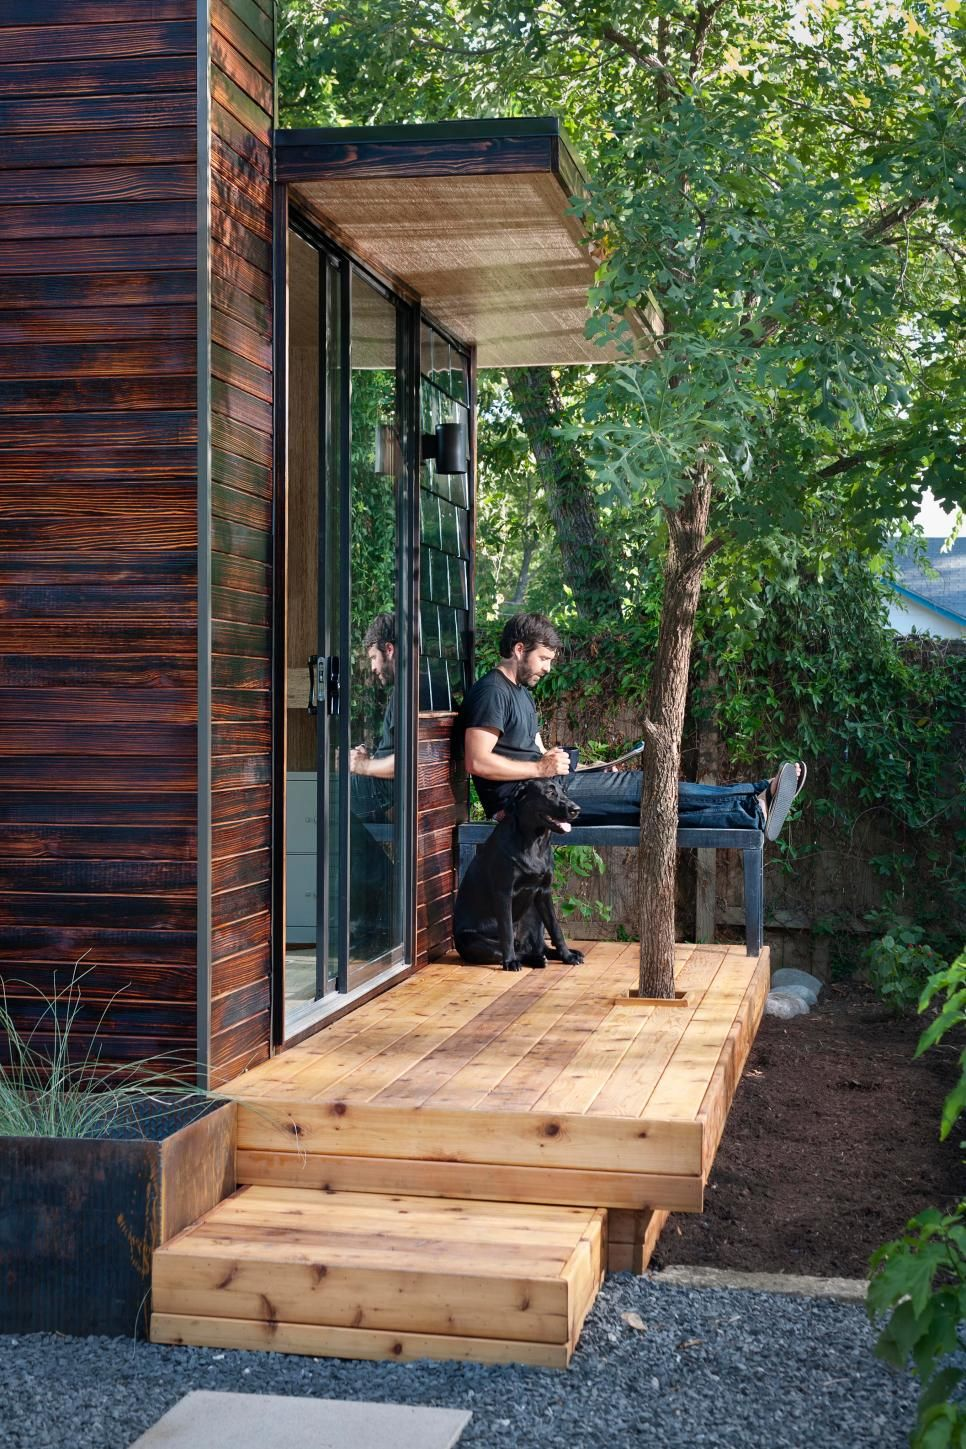 Tiny Backyard Home Office With Deck and Table Home Design